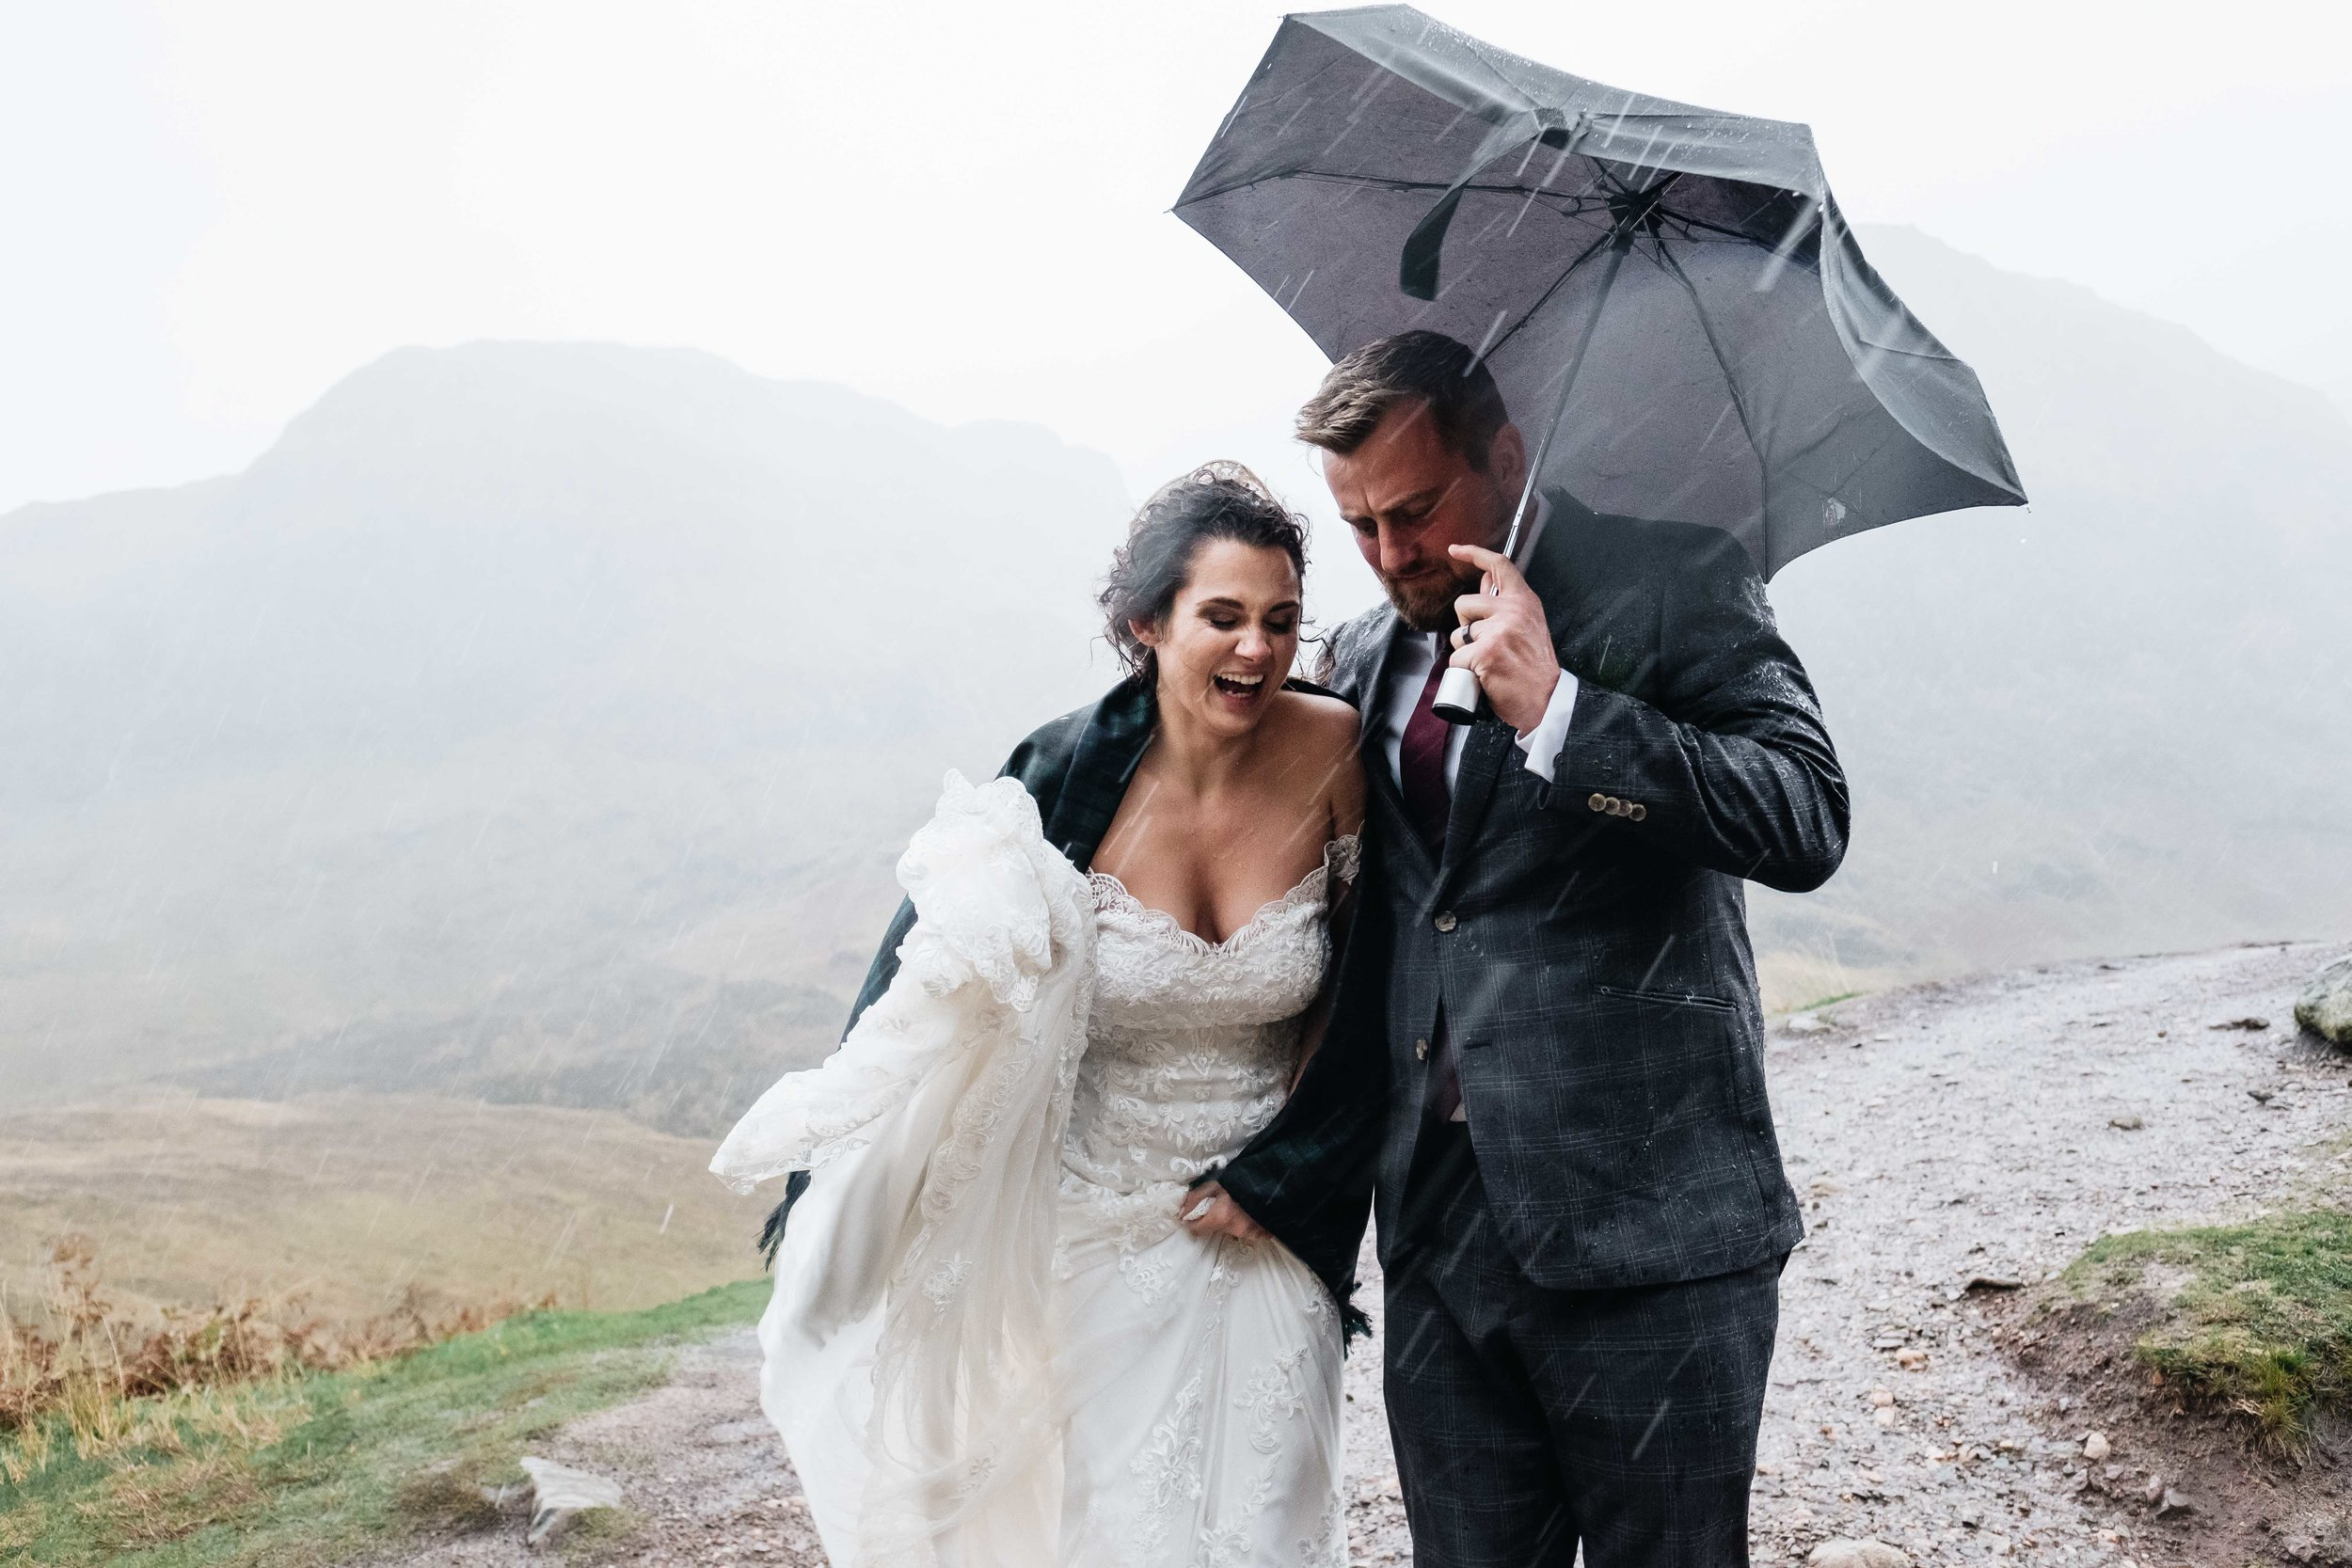 A bride and groom walk in torrential rain .The groom holds an umbrella but it's clear the wind is too heavy to protect them.